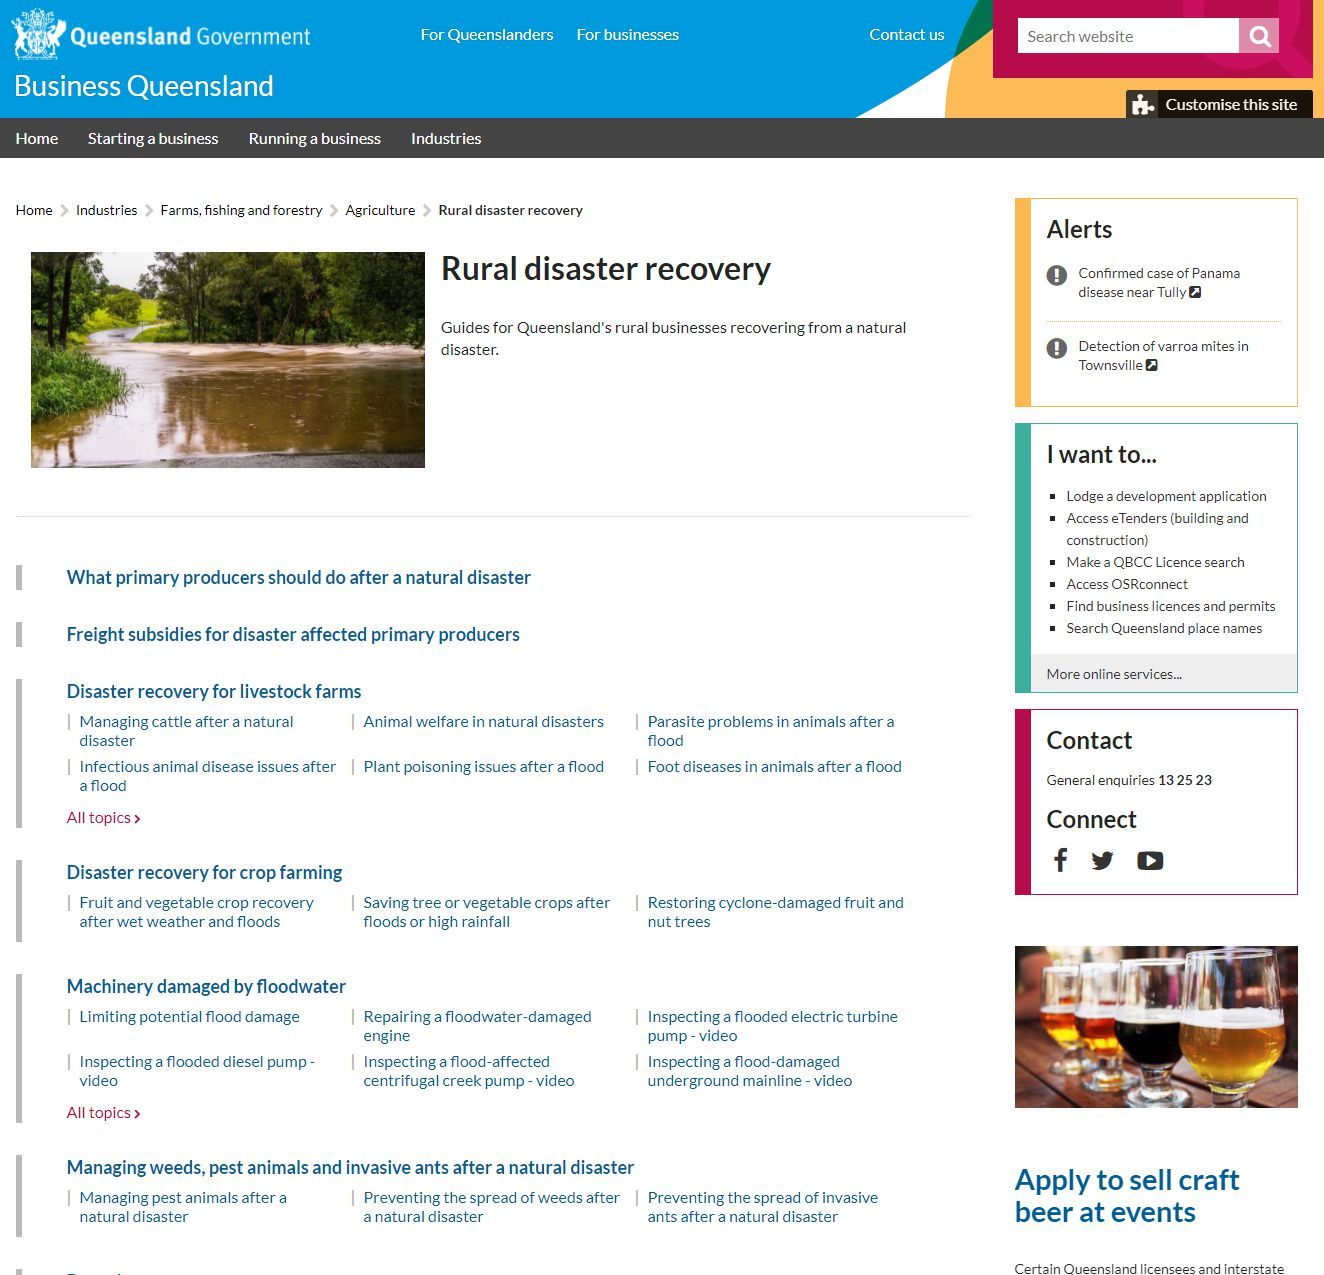 An example of excellence in presenting agricultural disaster recovery information